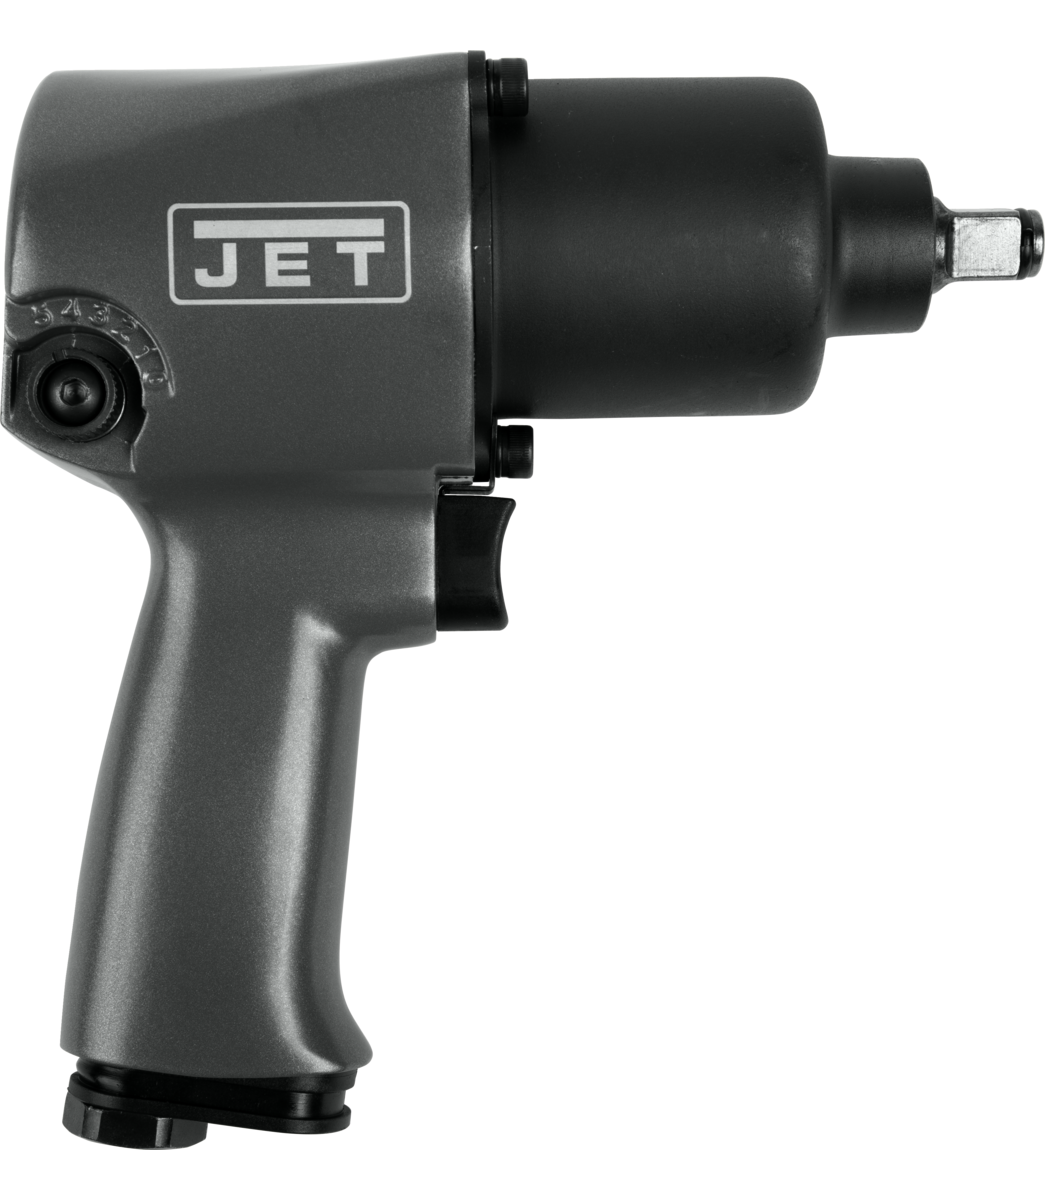 "JAT-103 1/2"" IMPCT WRNCH 680 ft-lbs"